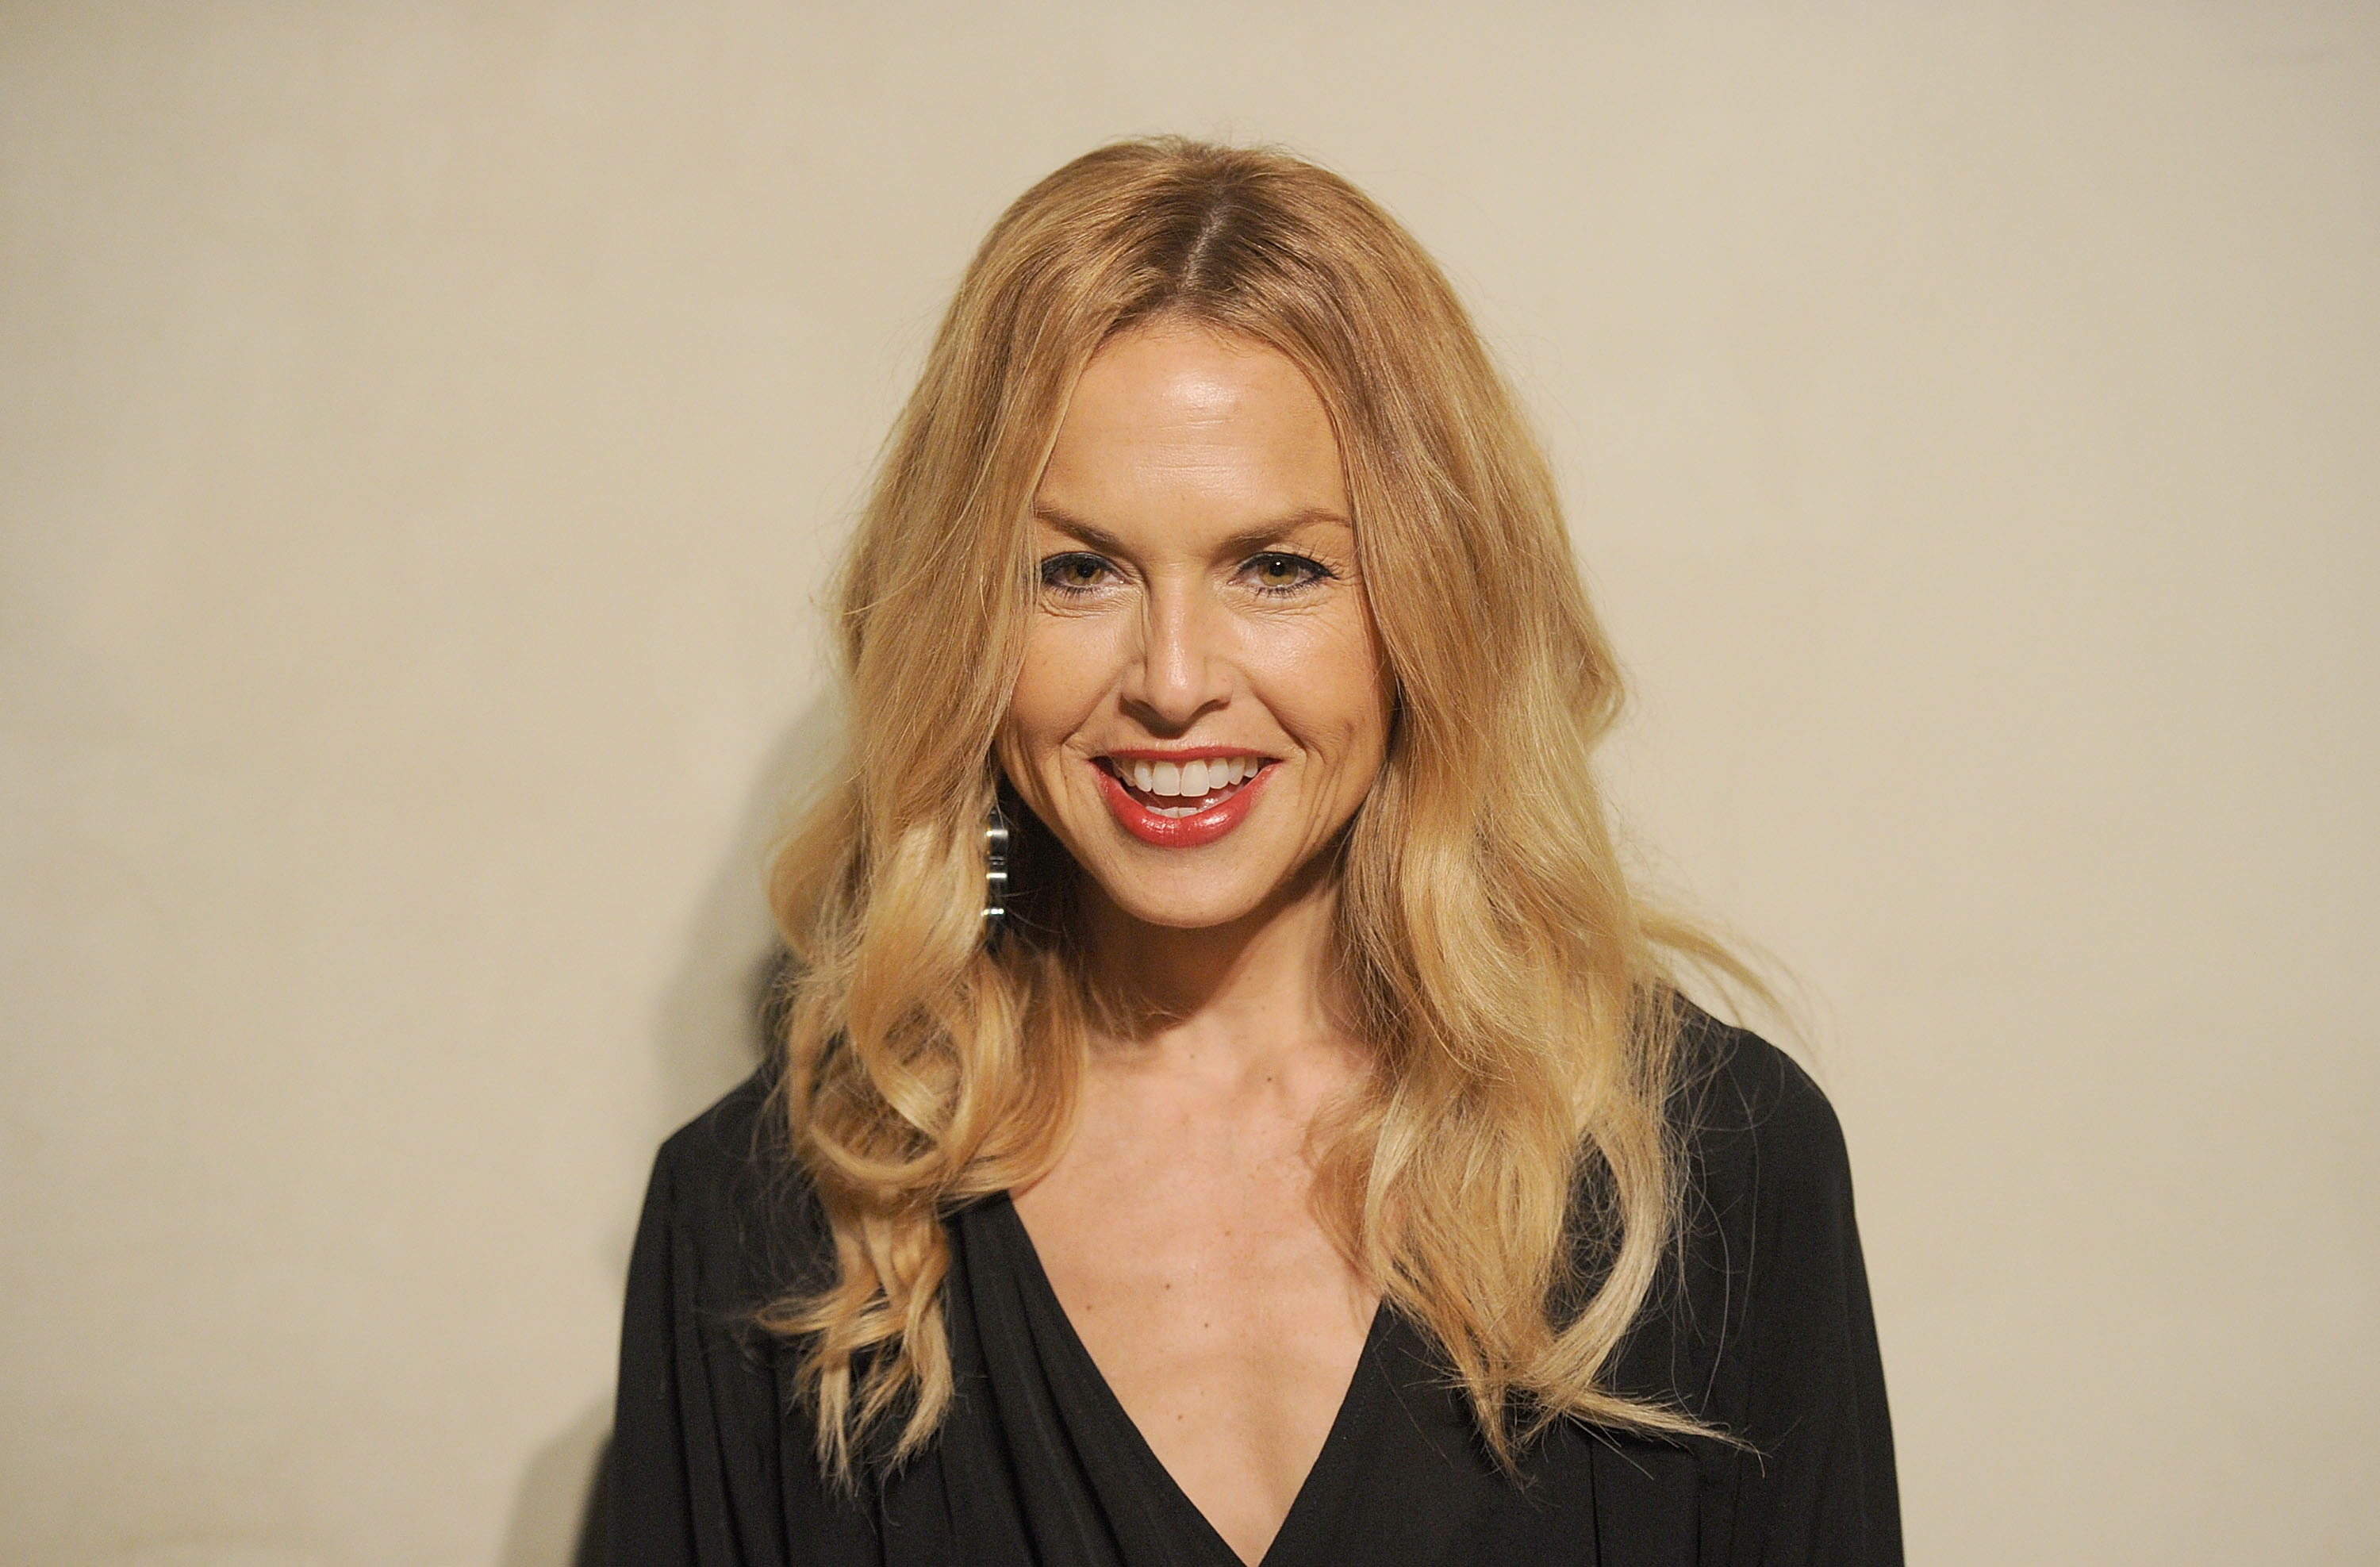 Rachel Zoe smiled on her way to a private dinner.